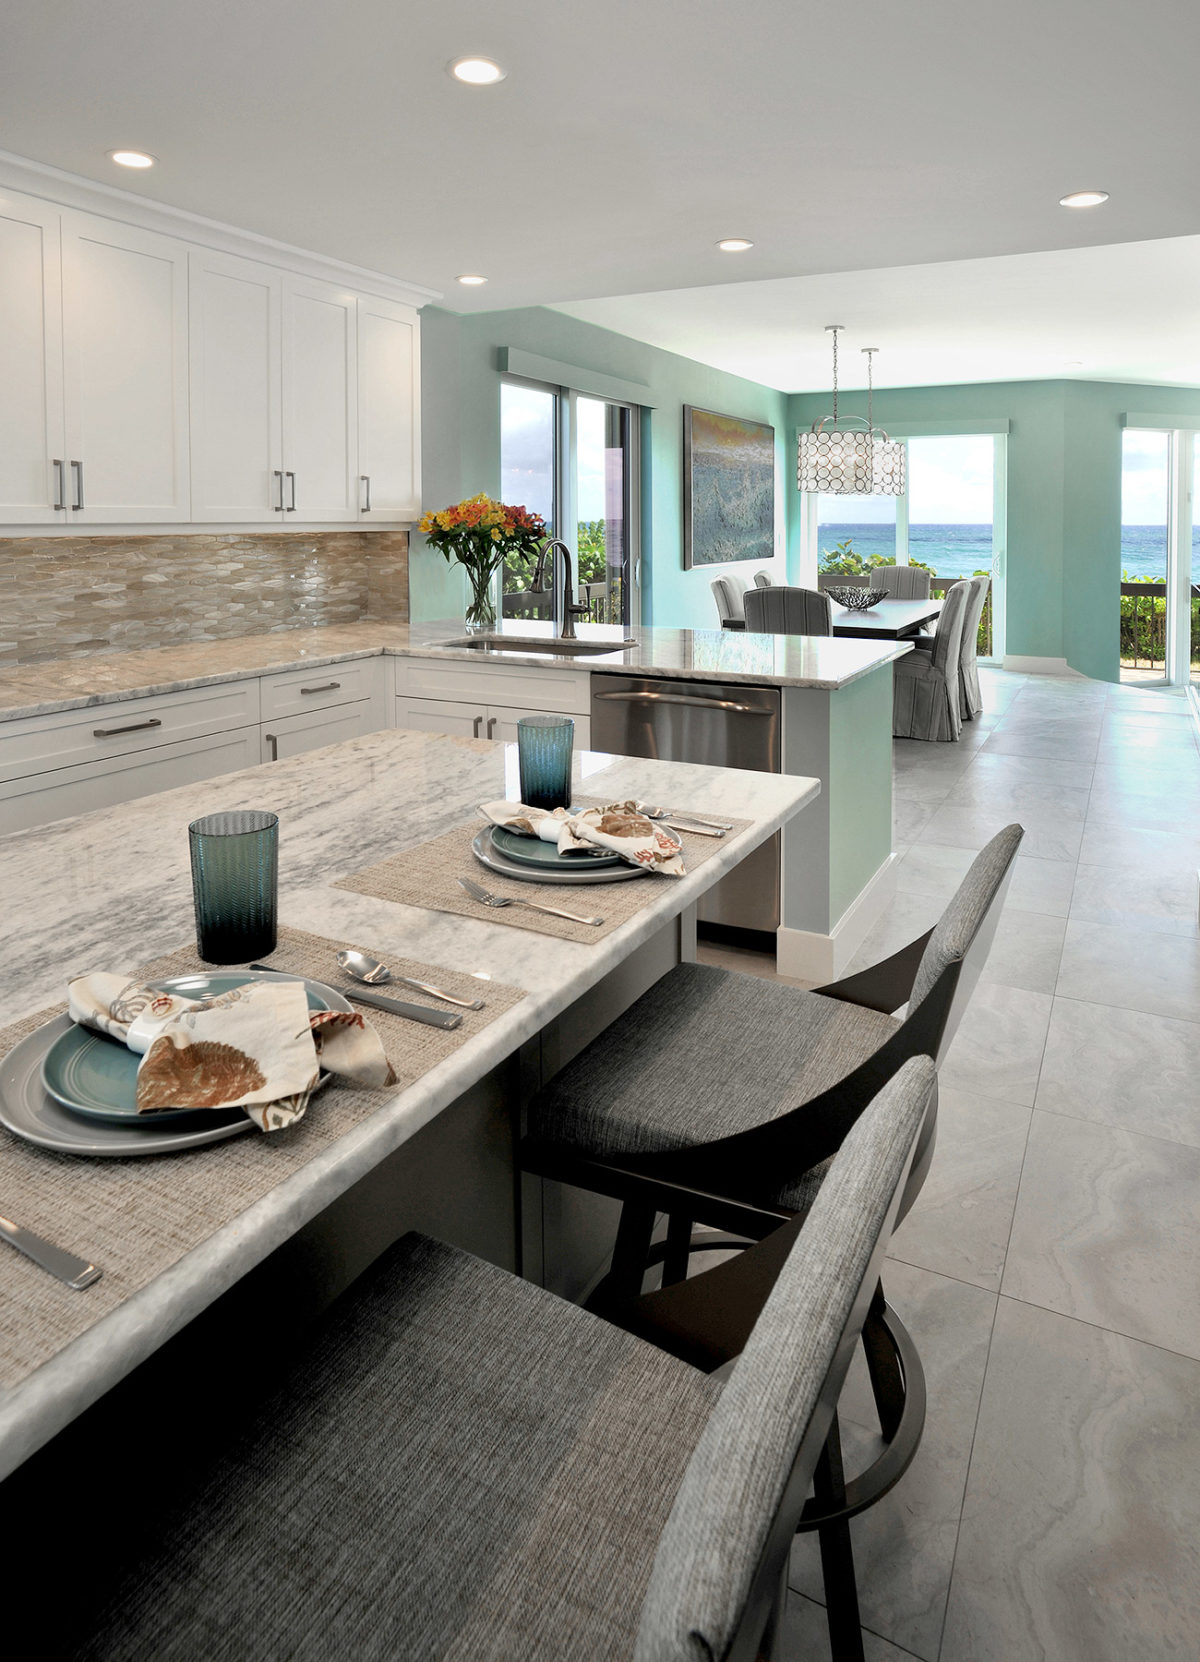 Kitchen in a beach house showing quartzite stone kitchen counter